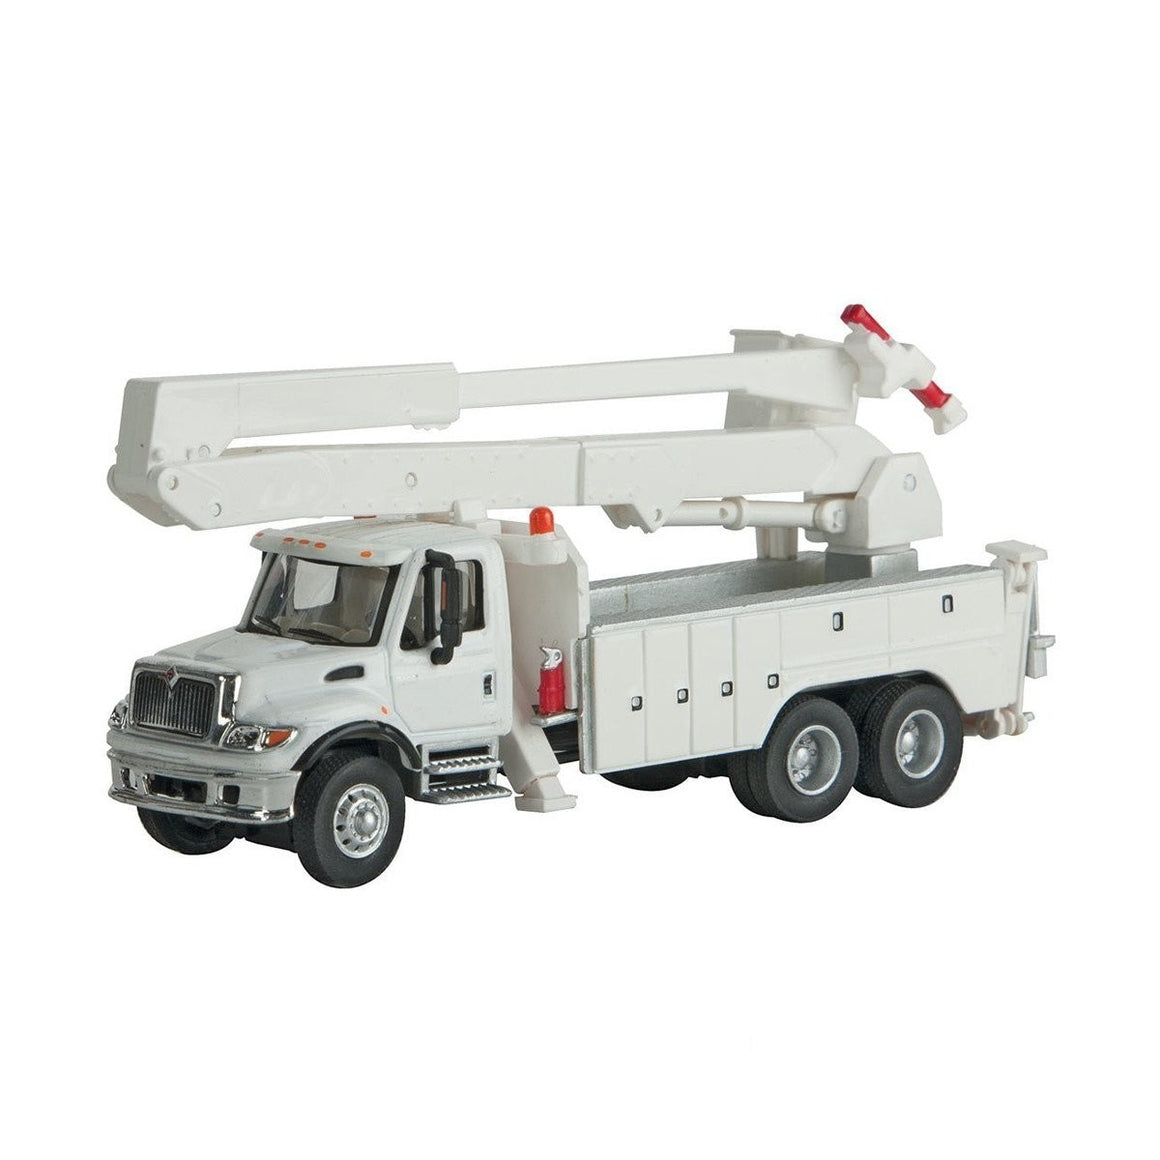 HO Scale: International® 7600 Utility Truck w/Bucket Lift - White w/ RR MOW Decals